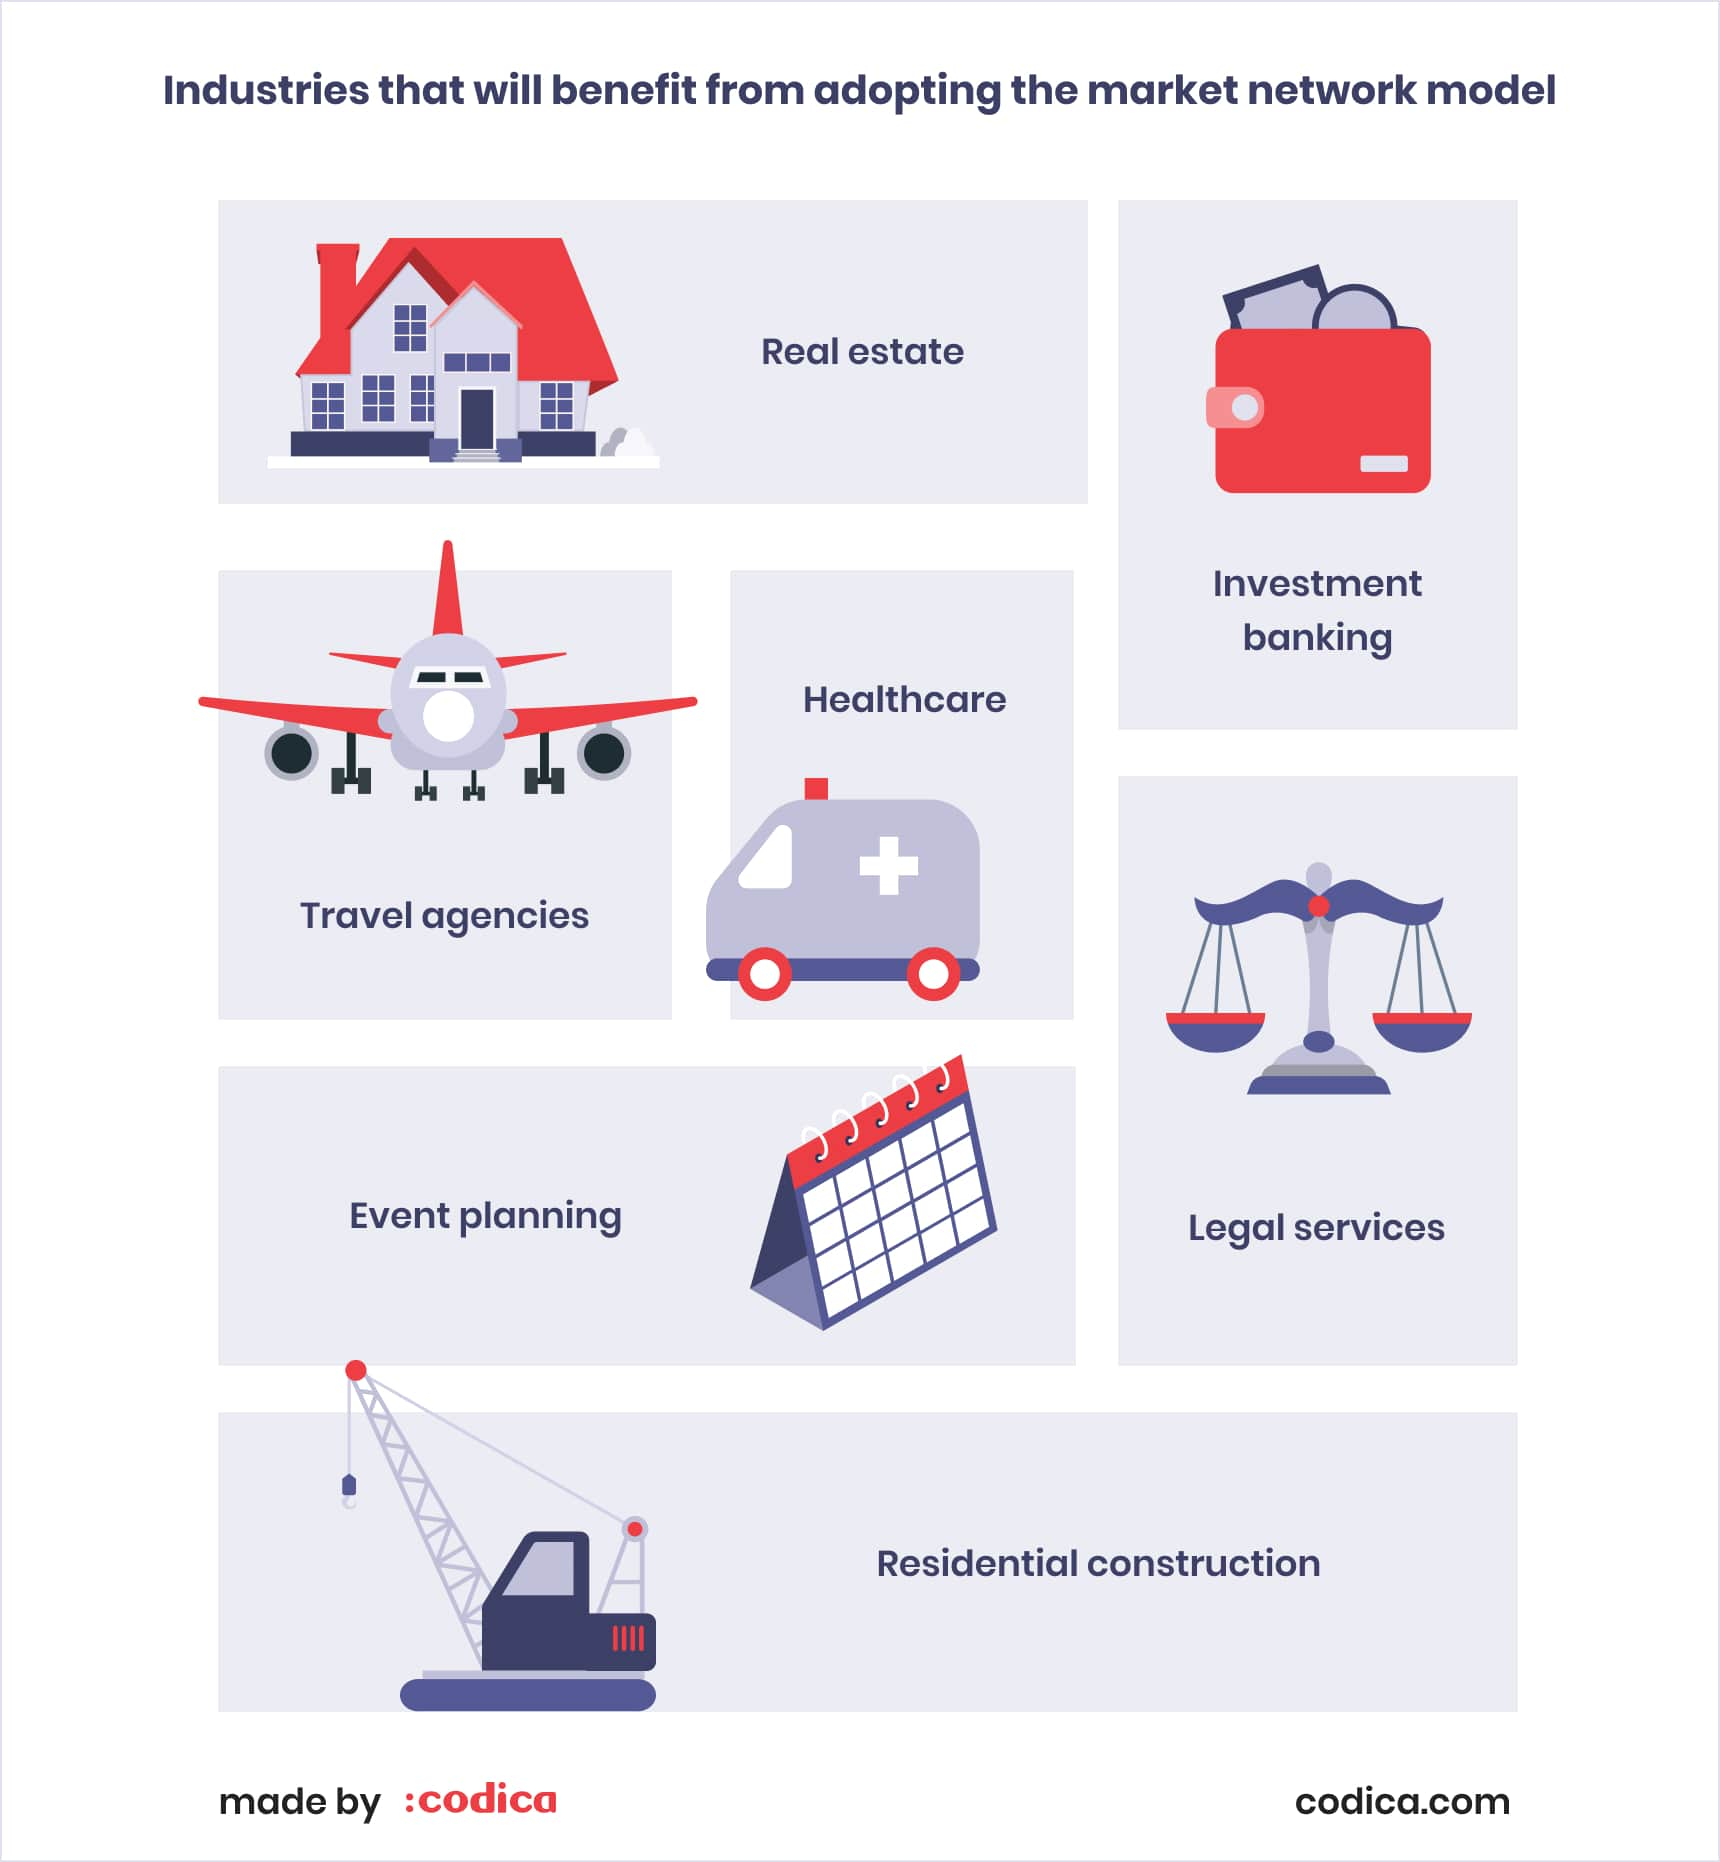 Best industries for adopting the market network model | Codica